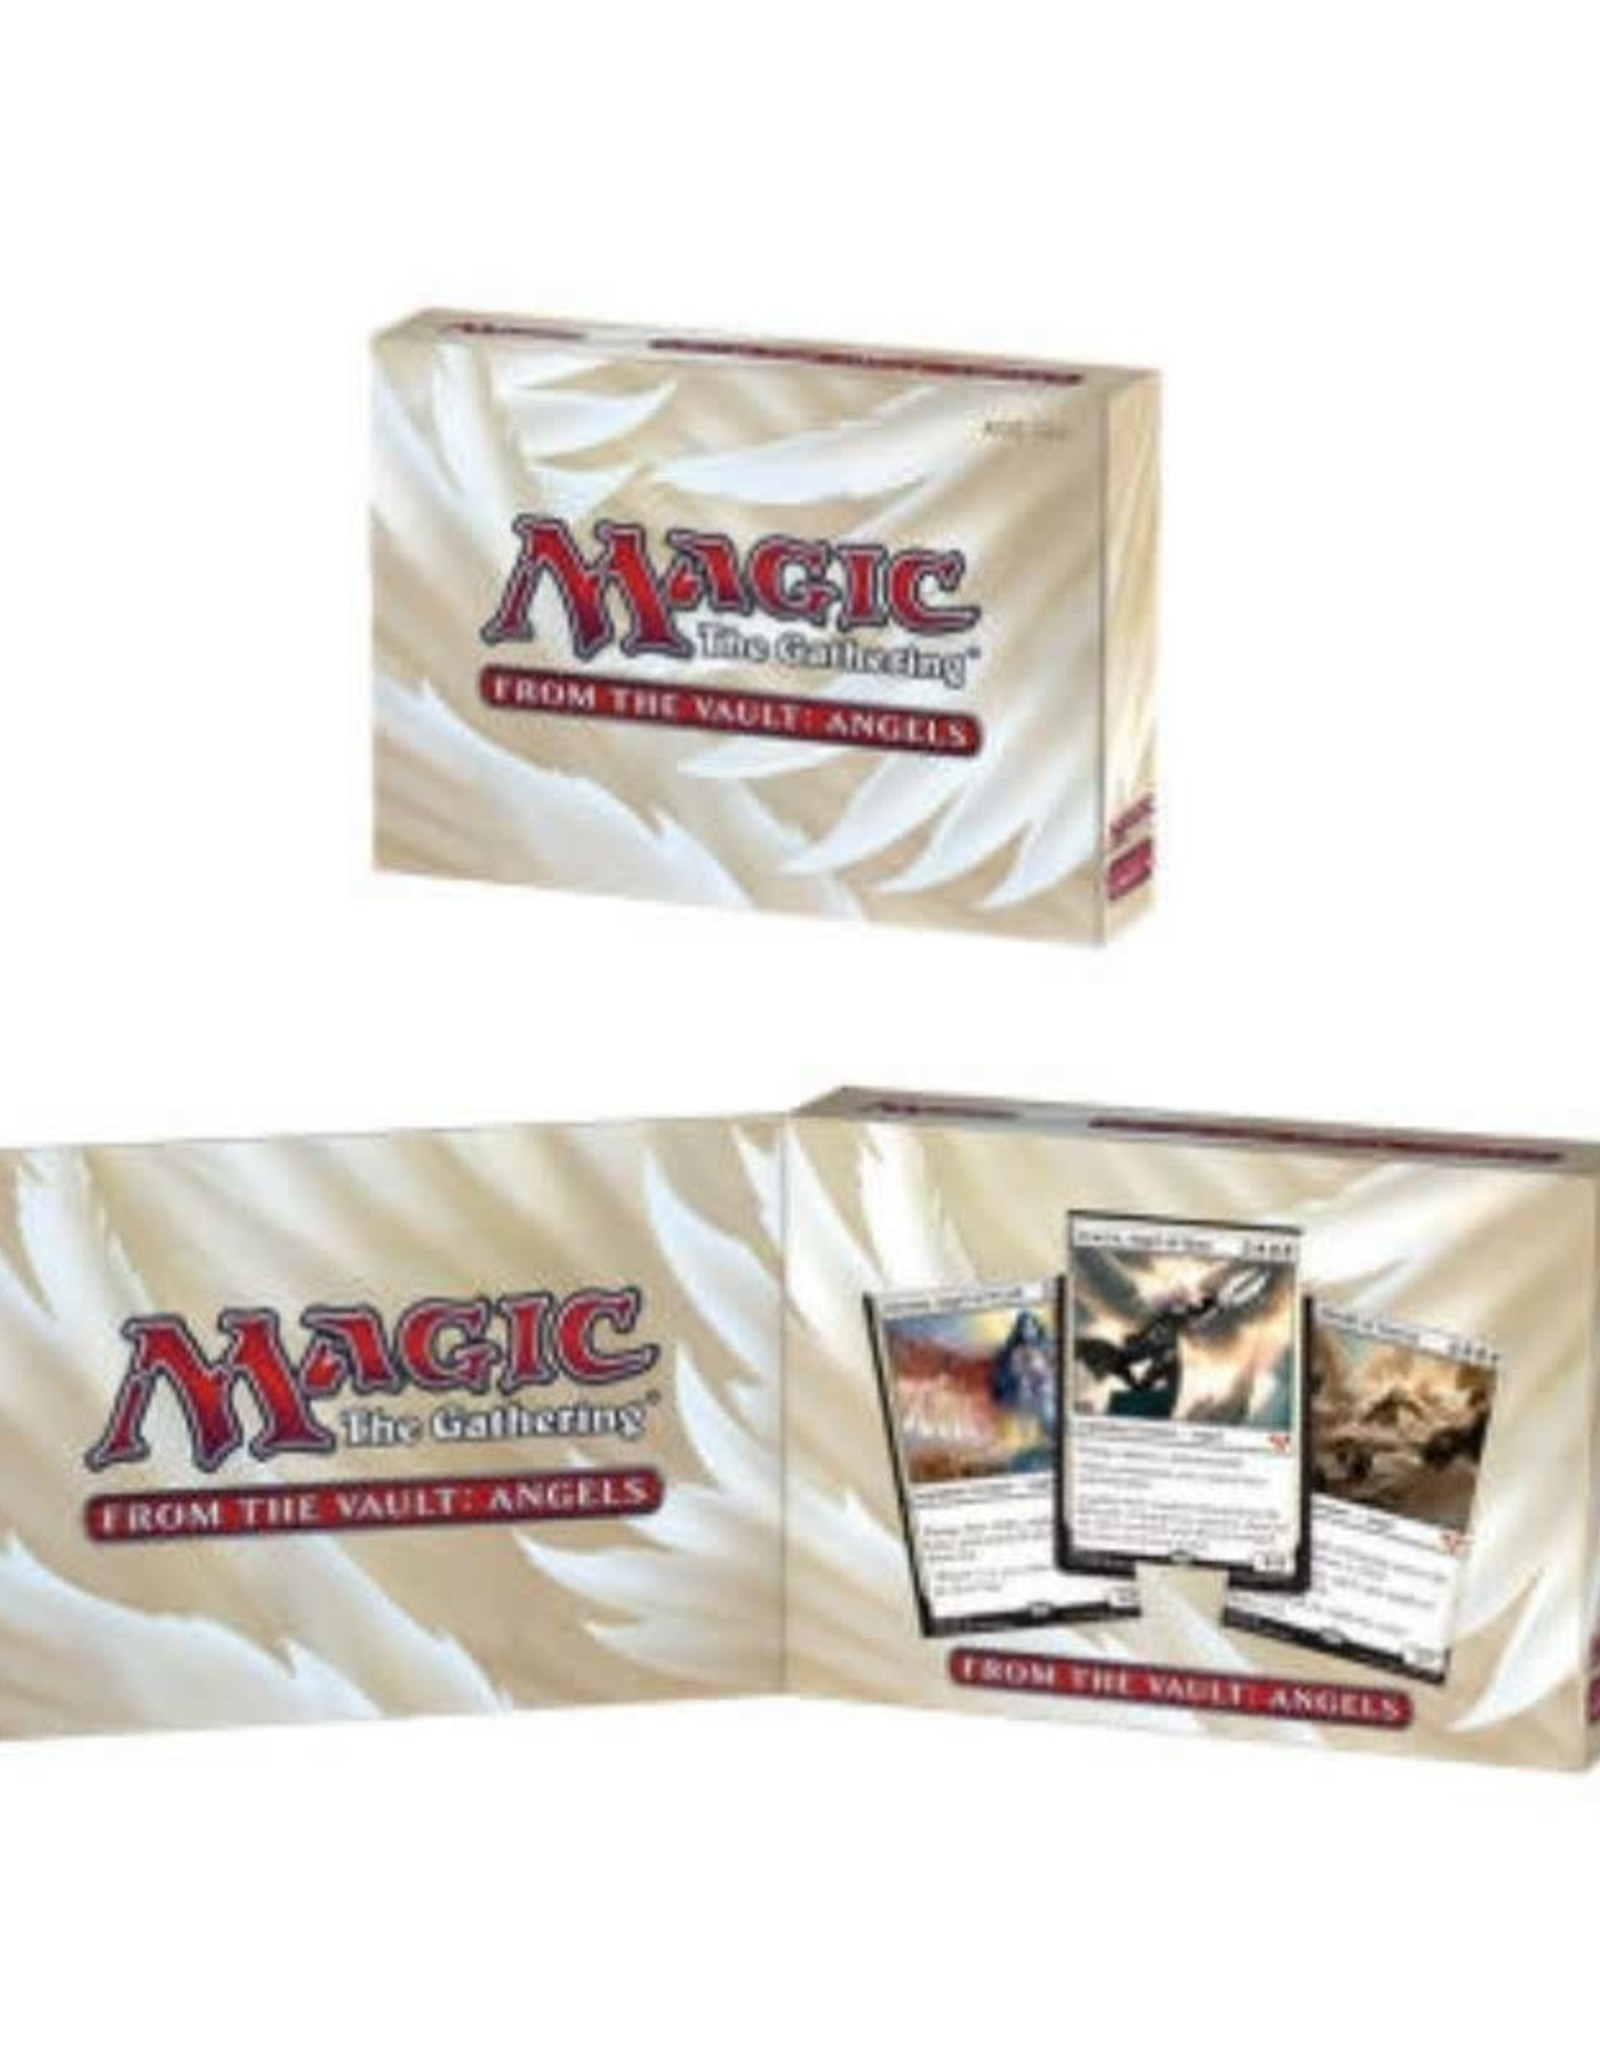 Wizards of the Coast From the Vault (Angels)